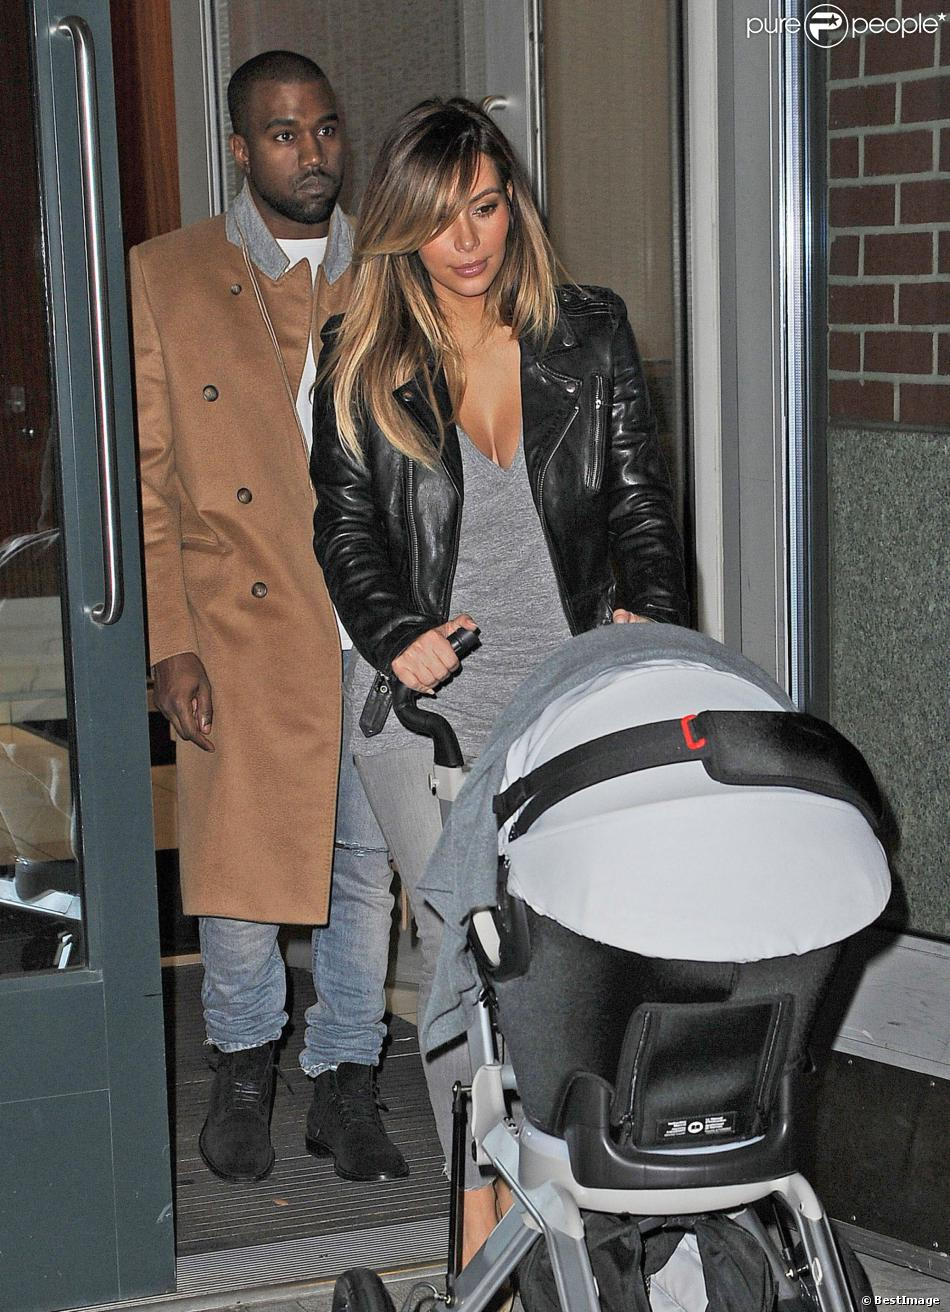 Kanye West, Kim Kardashian et leur fille North dinent a New York, le 22 novembre 2013 Kanye West and Kim Kardashian have a family dinner with their daughter North in New York City, New York on November 22, 201322/11/2013 - New York